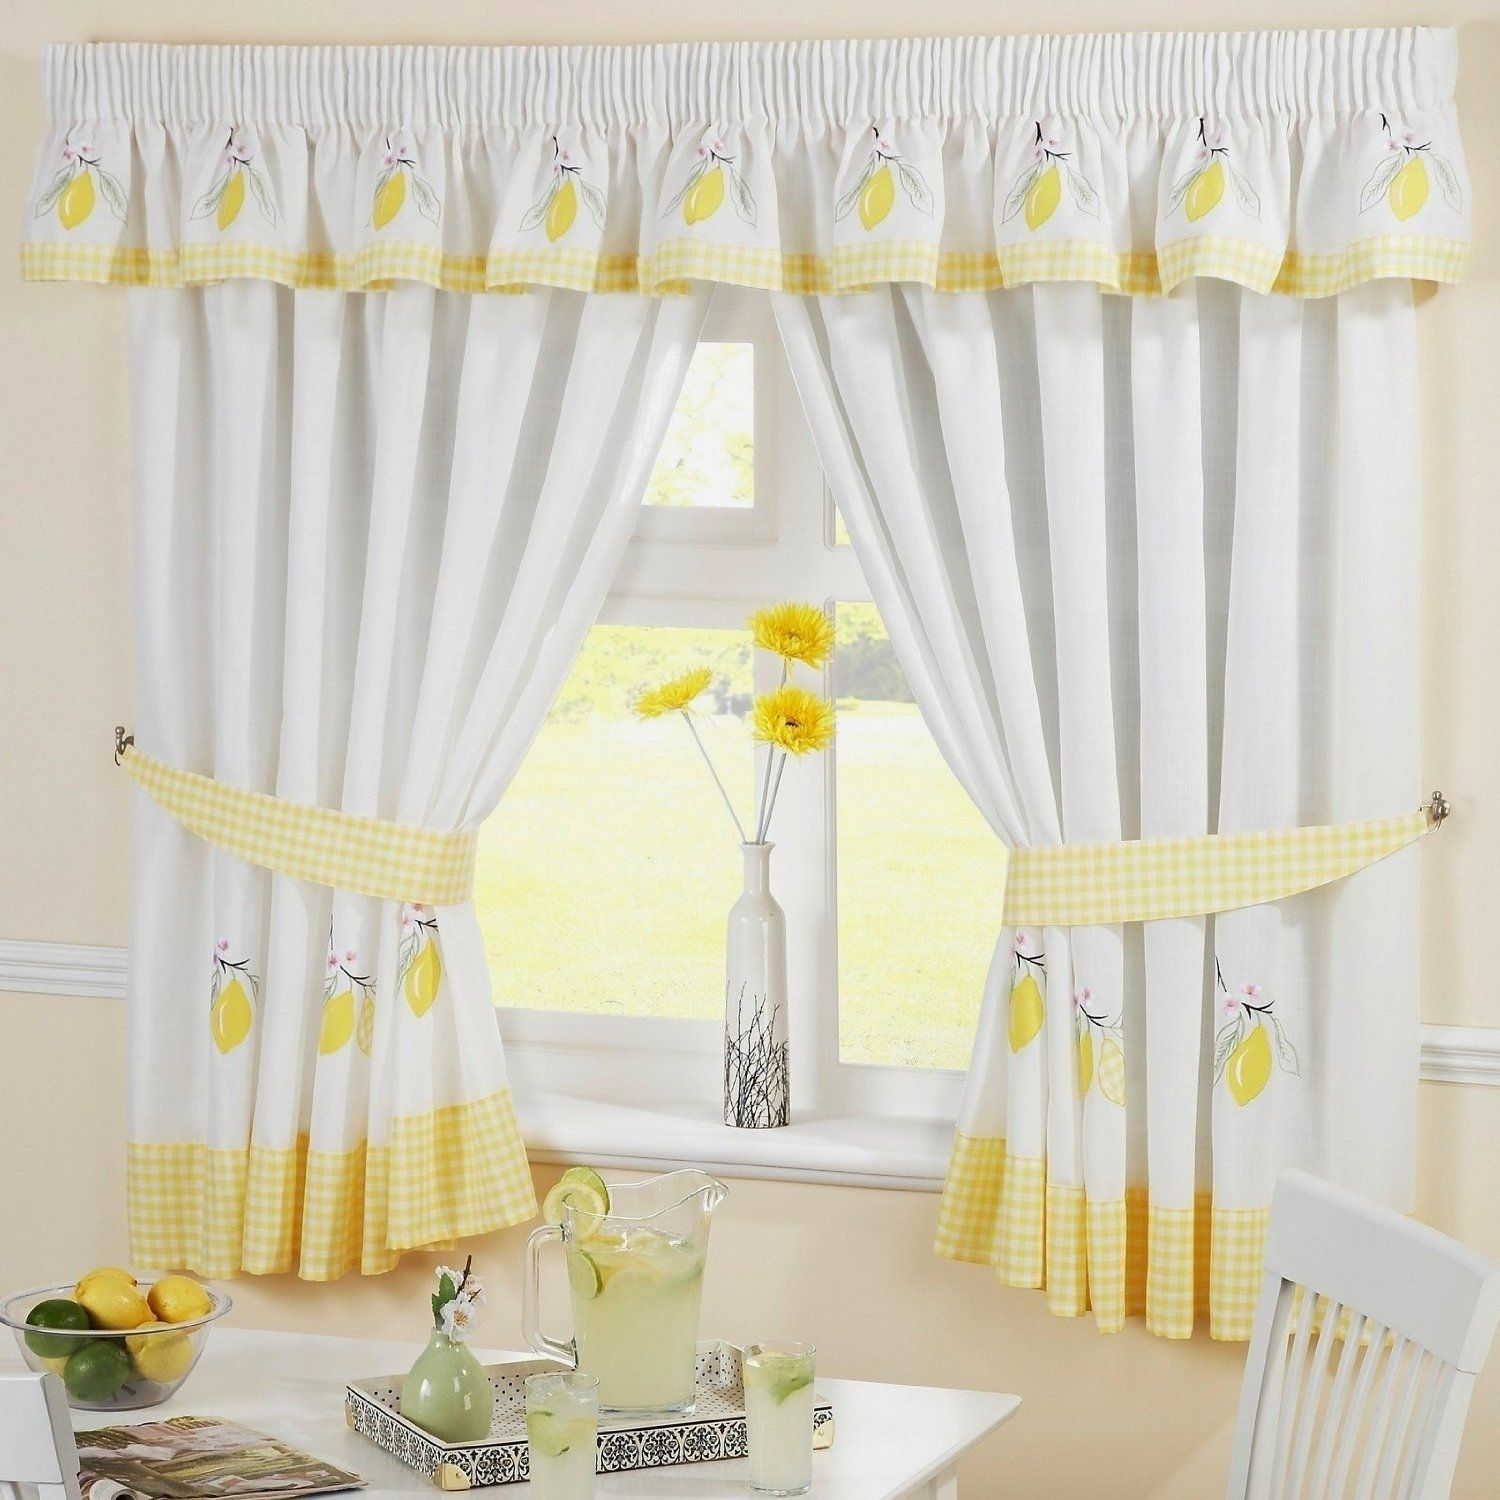 Pin By Cometbubba On Curtains Pinterest - Blue and yellow kitchen curtains